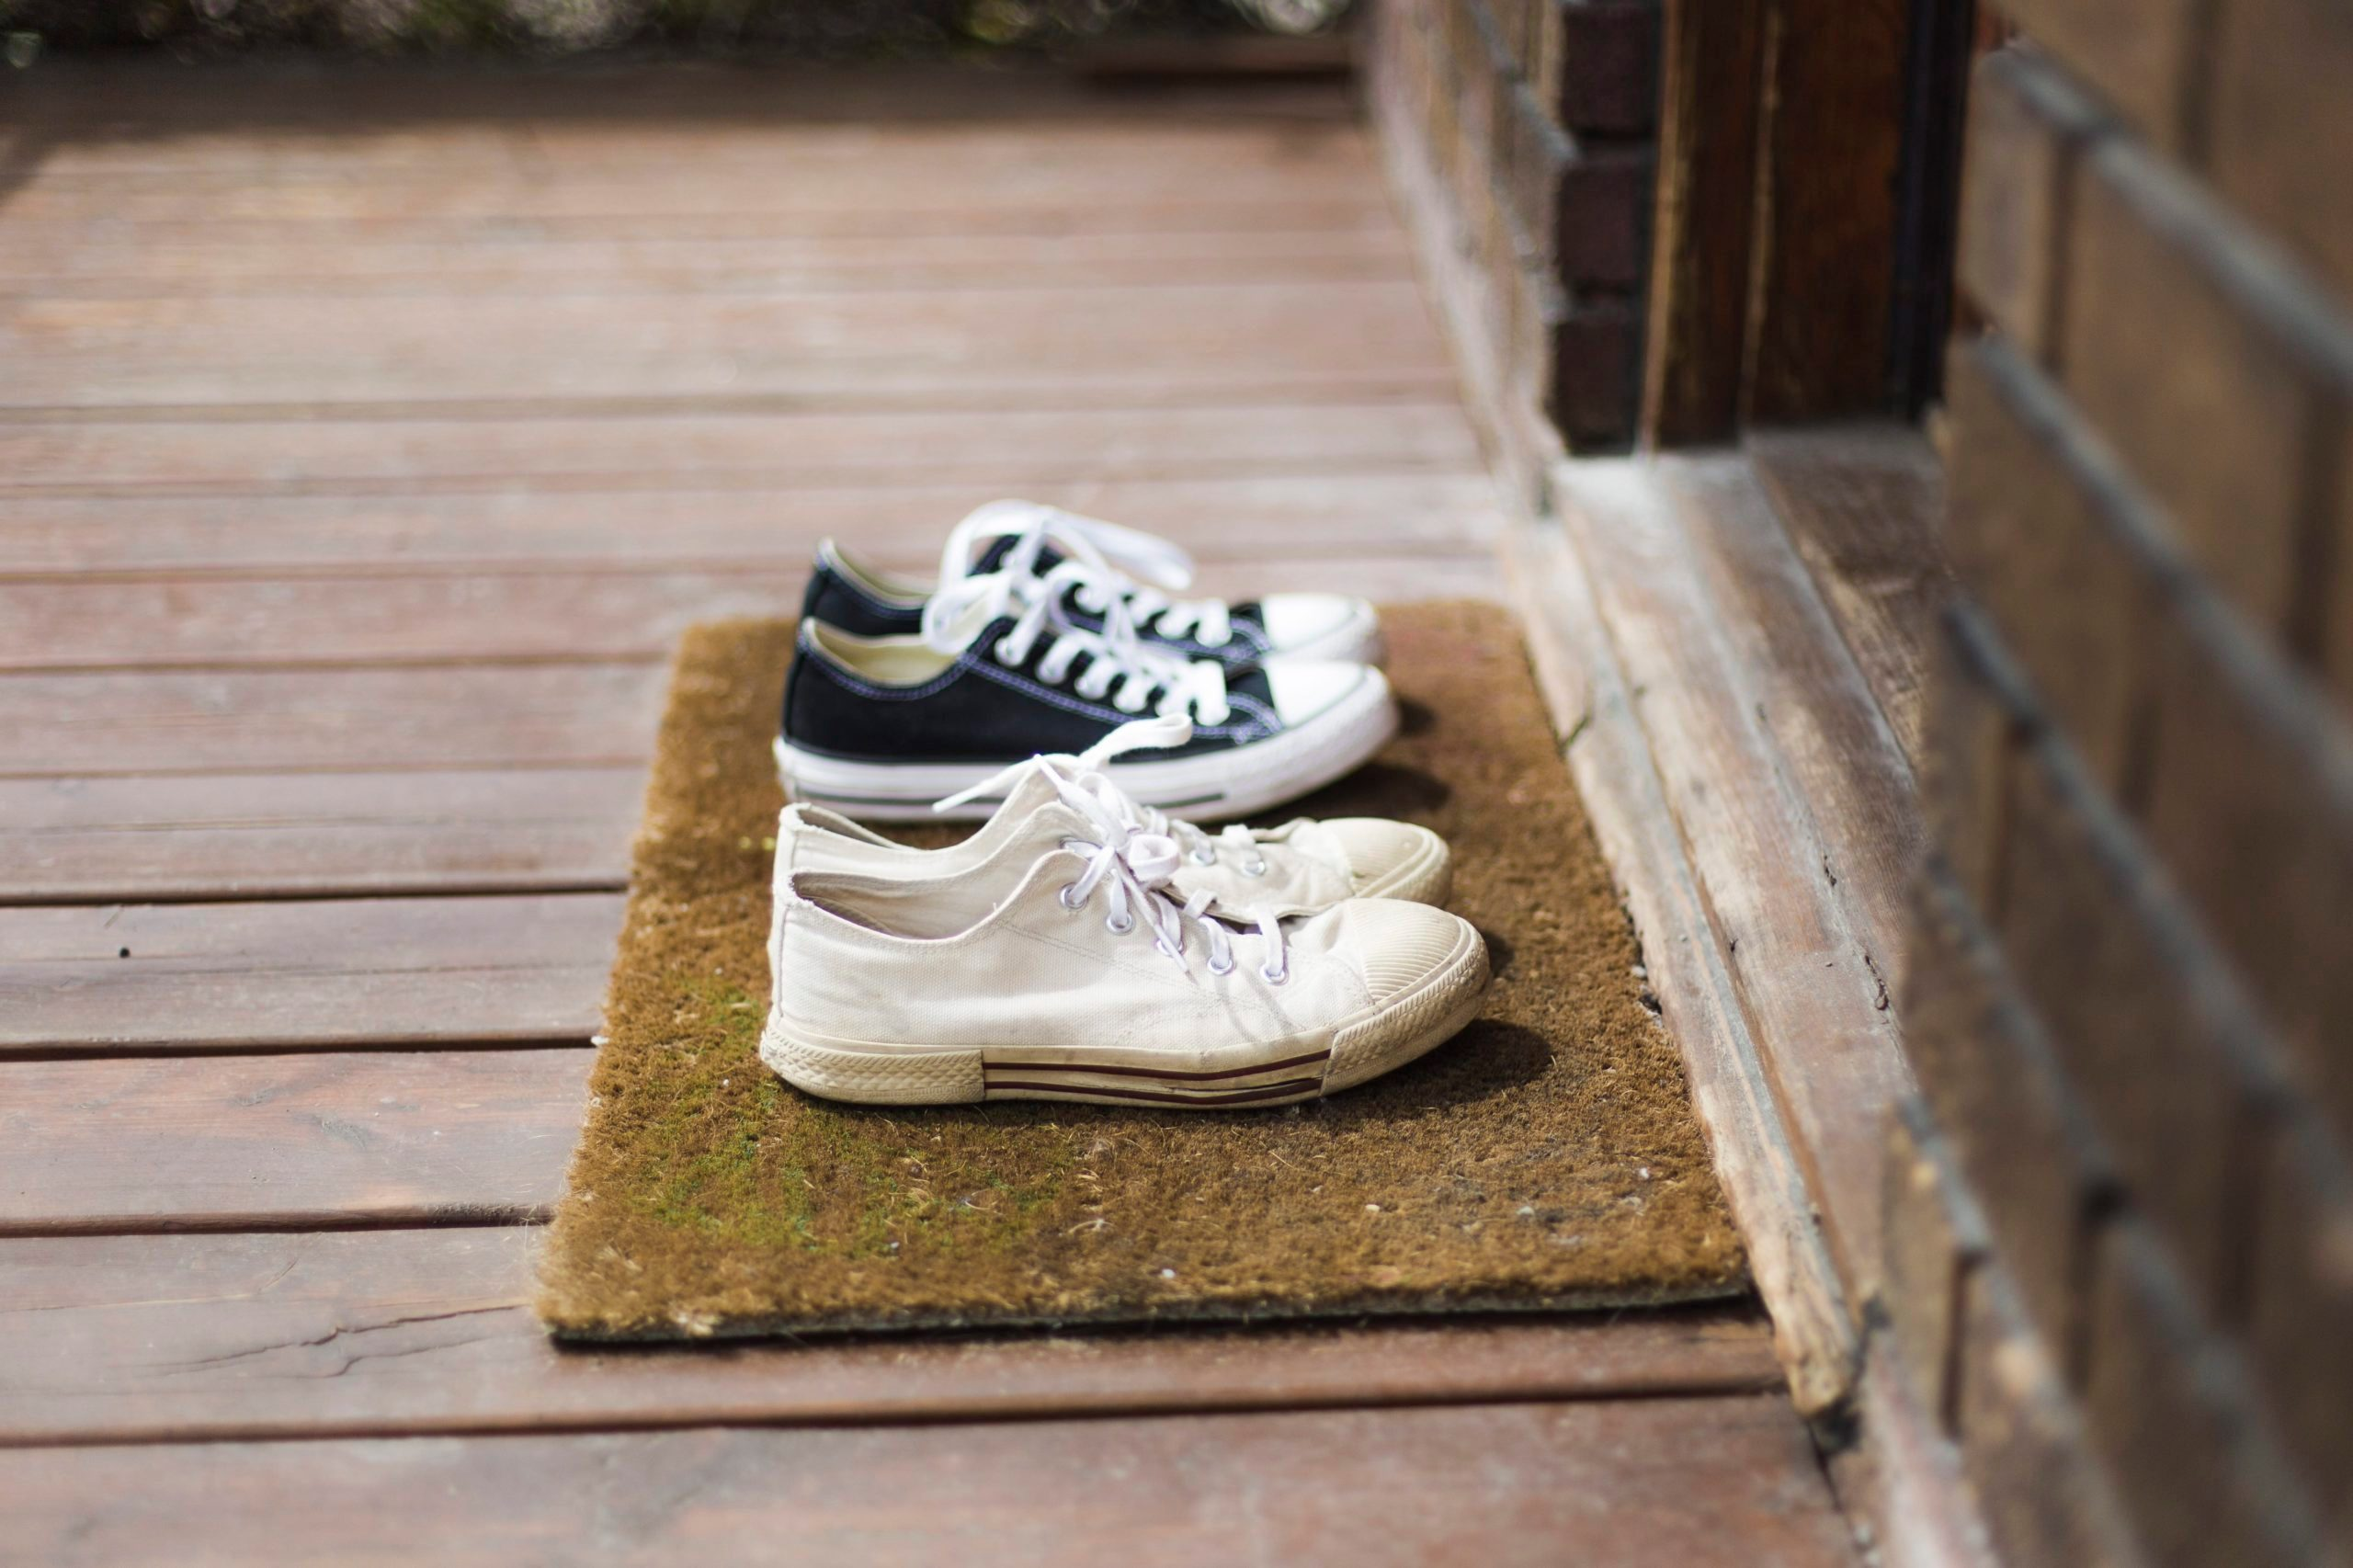 Two pairs of black and white sneakers shoes on a porch